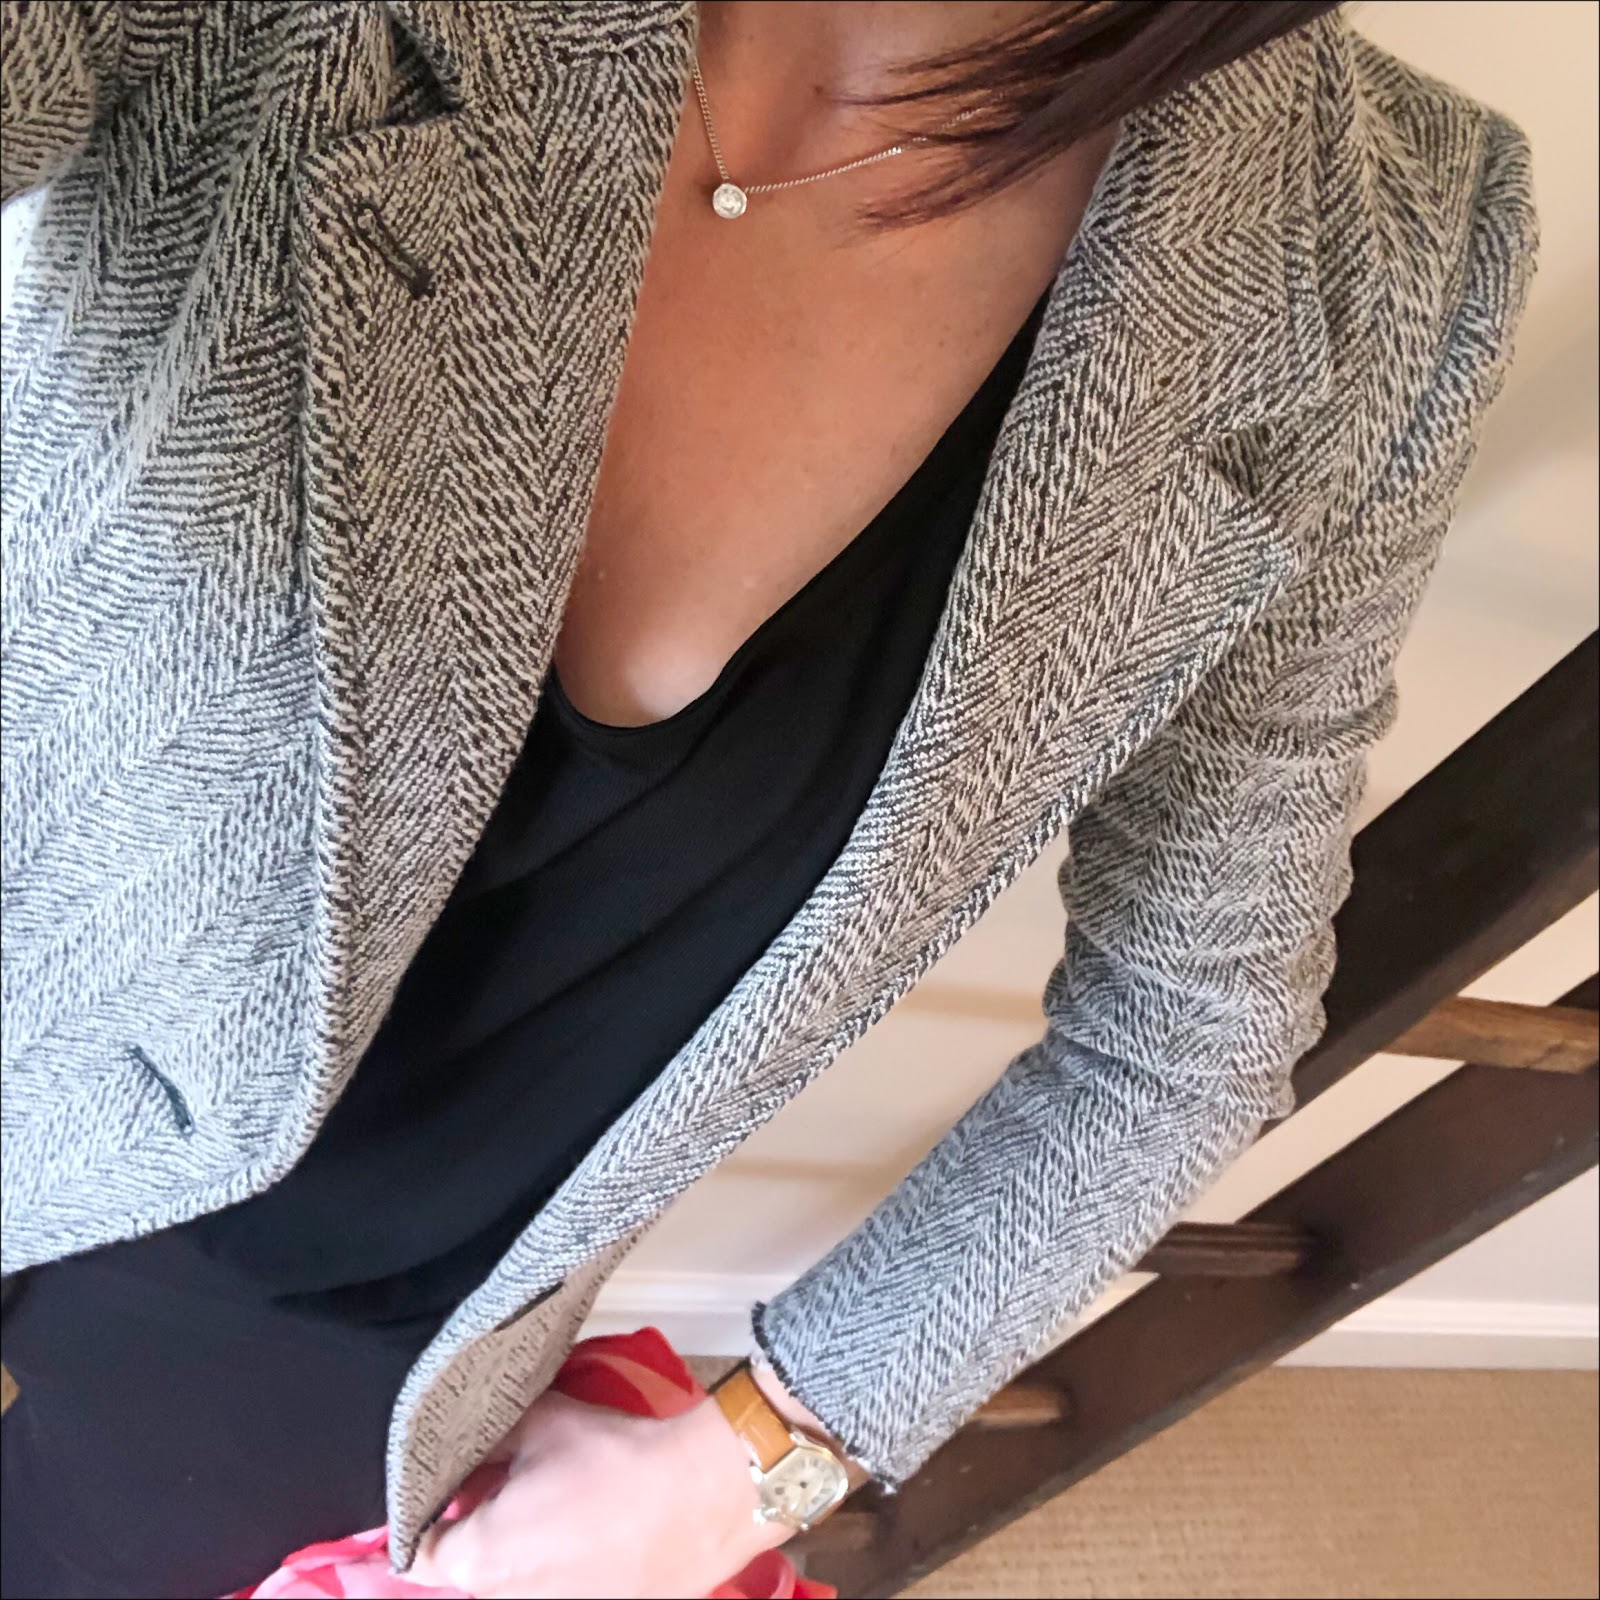 my midlife fashion, isabel marant etoile tweed jacket, splendid scoop neck batwing top, j crew cropped kick flare trousers, stella mccartney star silk scarf, j crew suede pointed tassel flat shoes